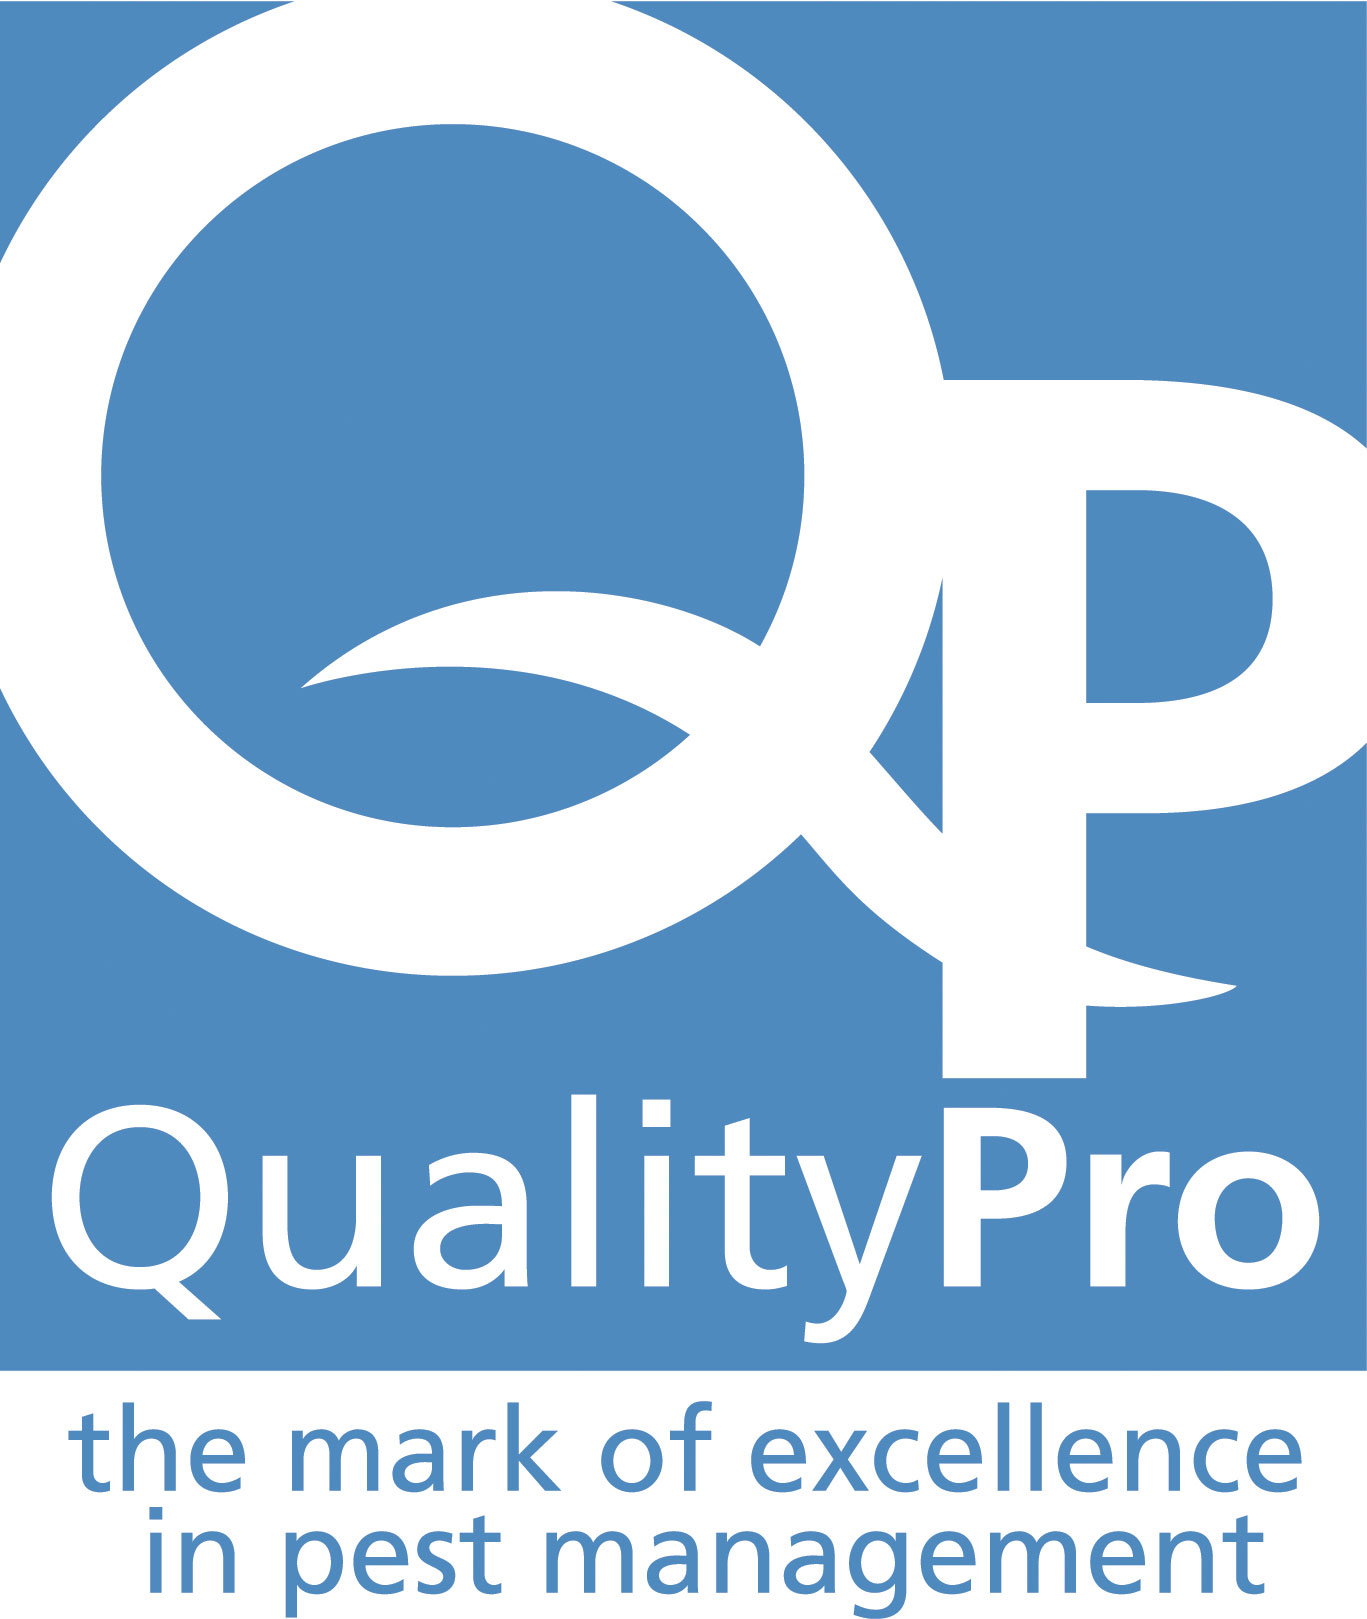 Quality-Pro-Mark-of-Excellence-Blue.jpg